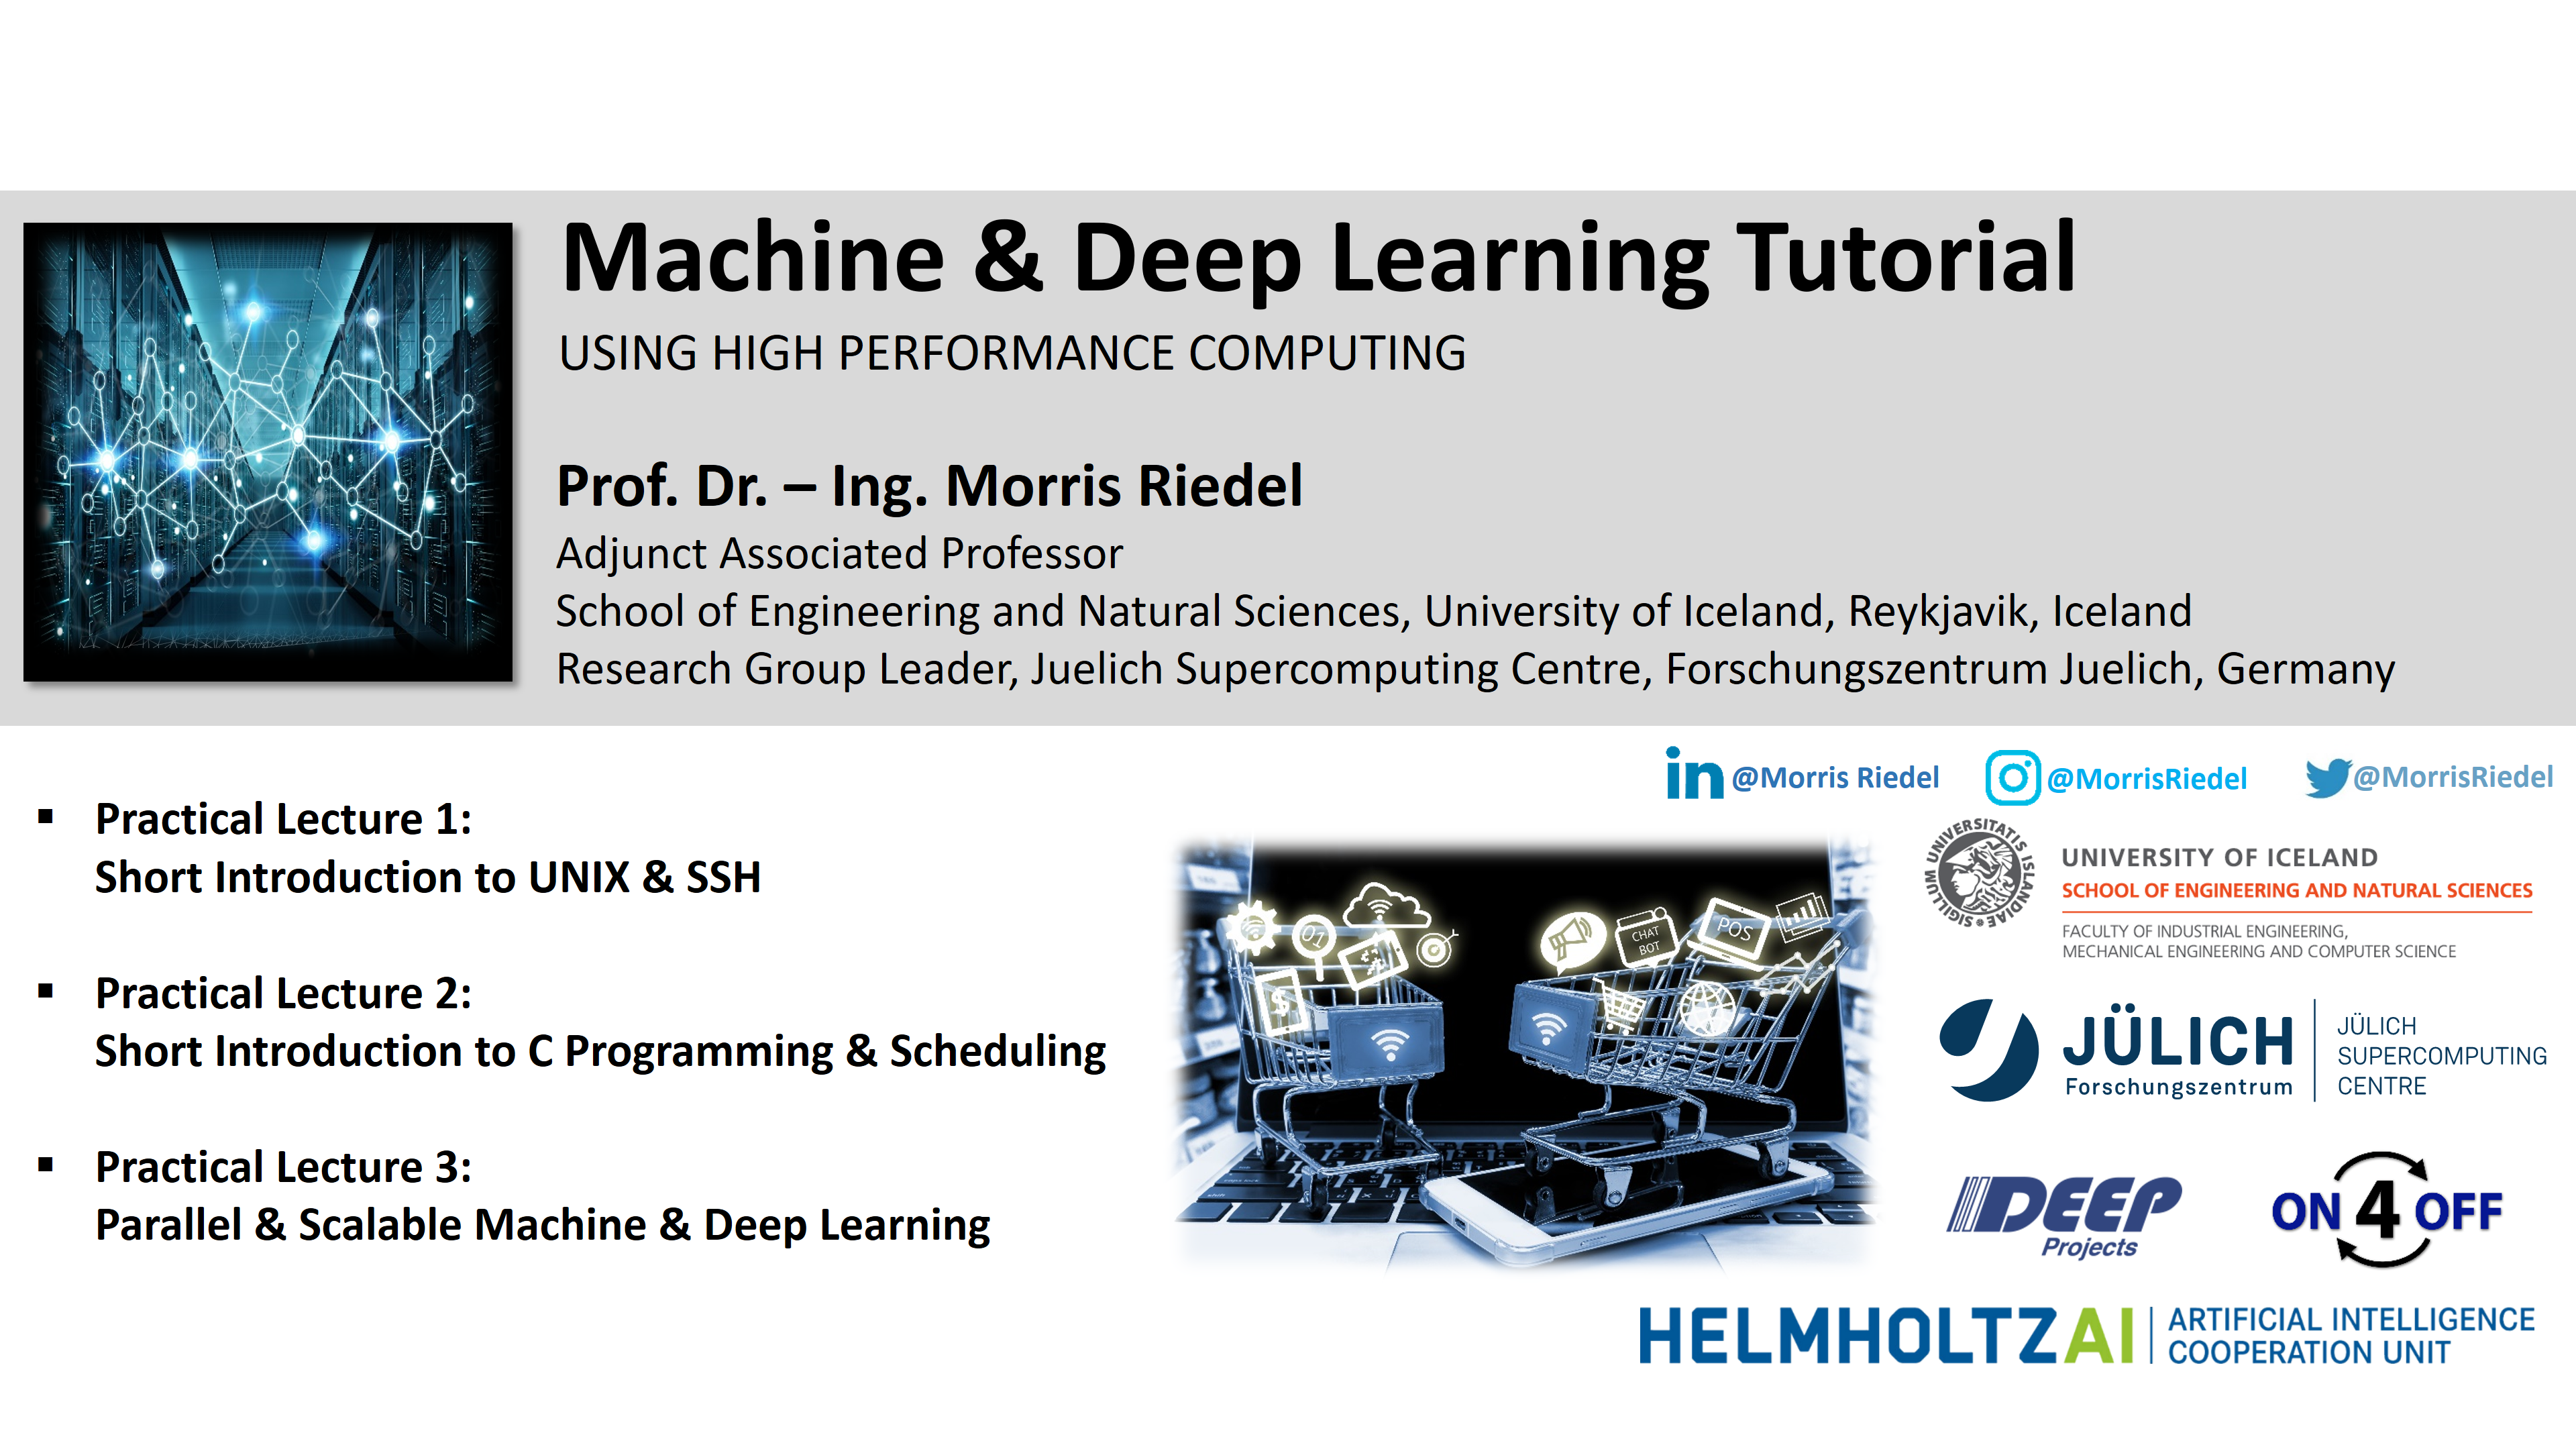 Machine and Deep Learning Tutorial - Using High Performance Computing